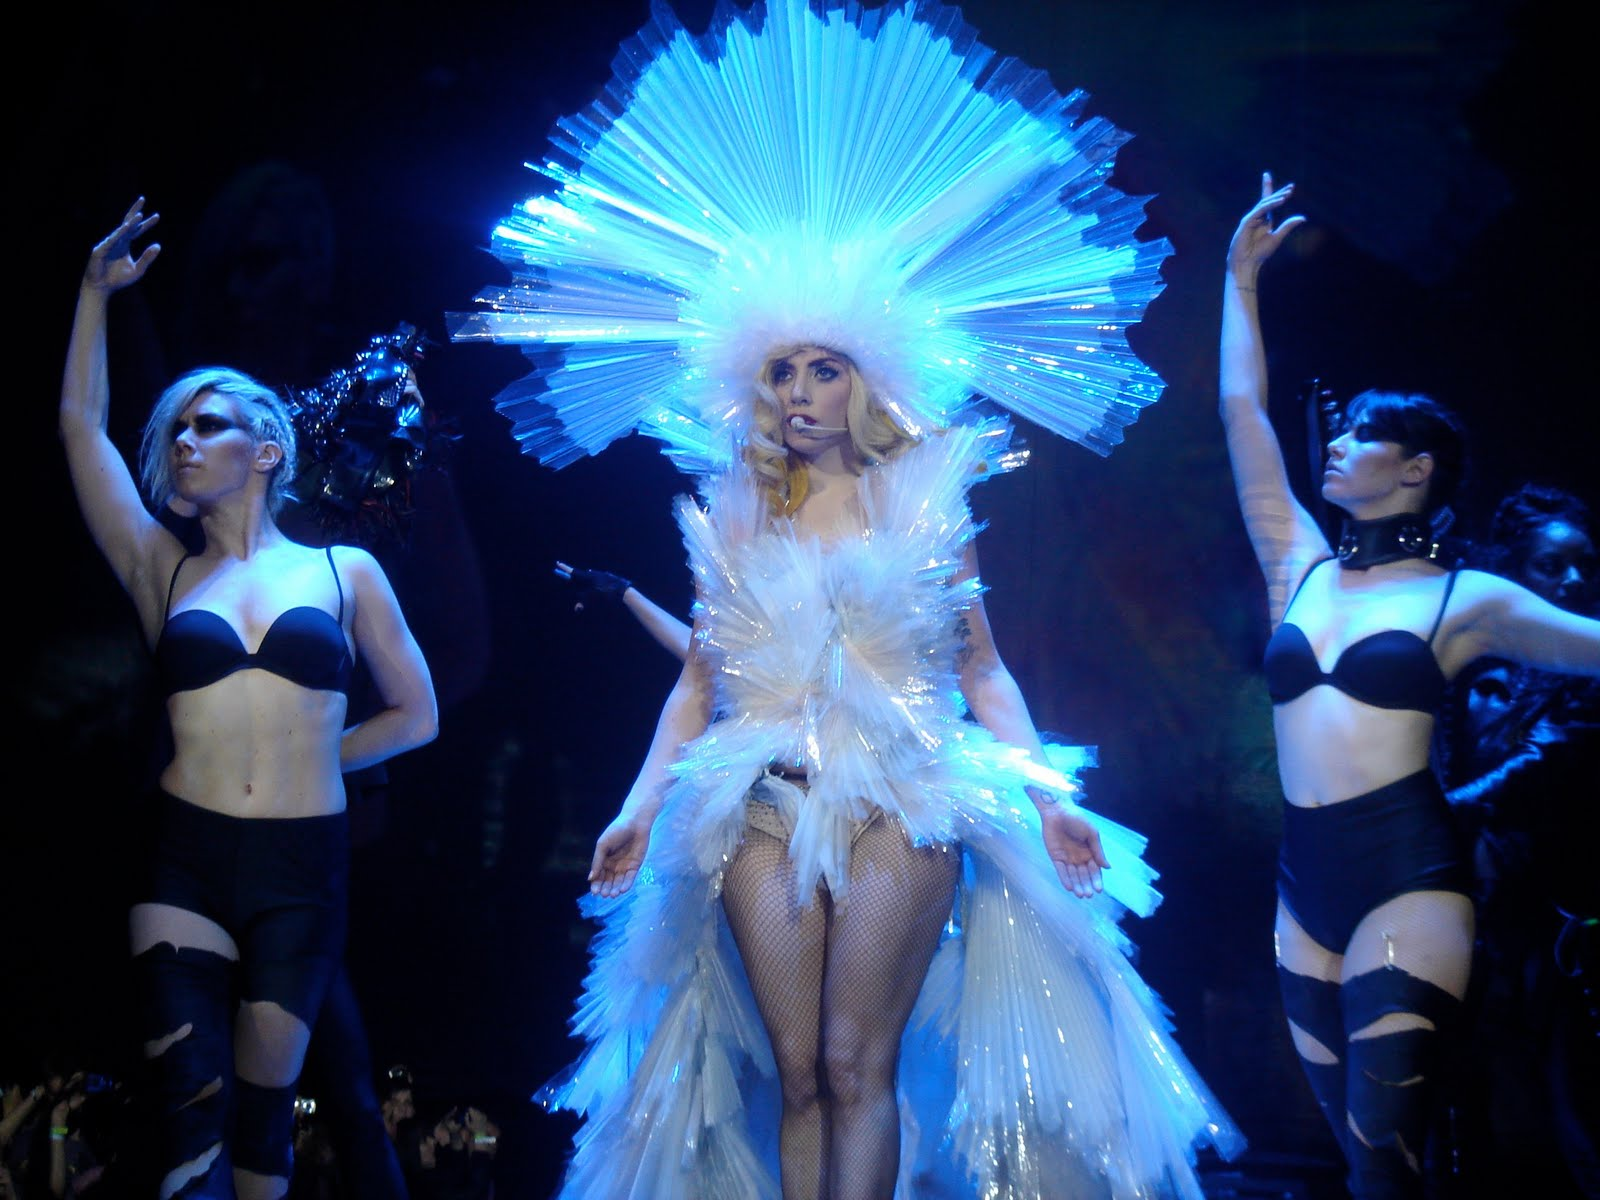 Lady-Gaga-Monster-Ball-Living-Dress.jpg